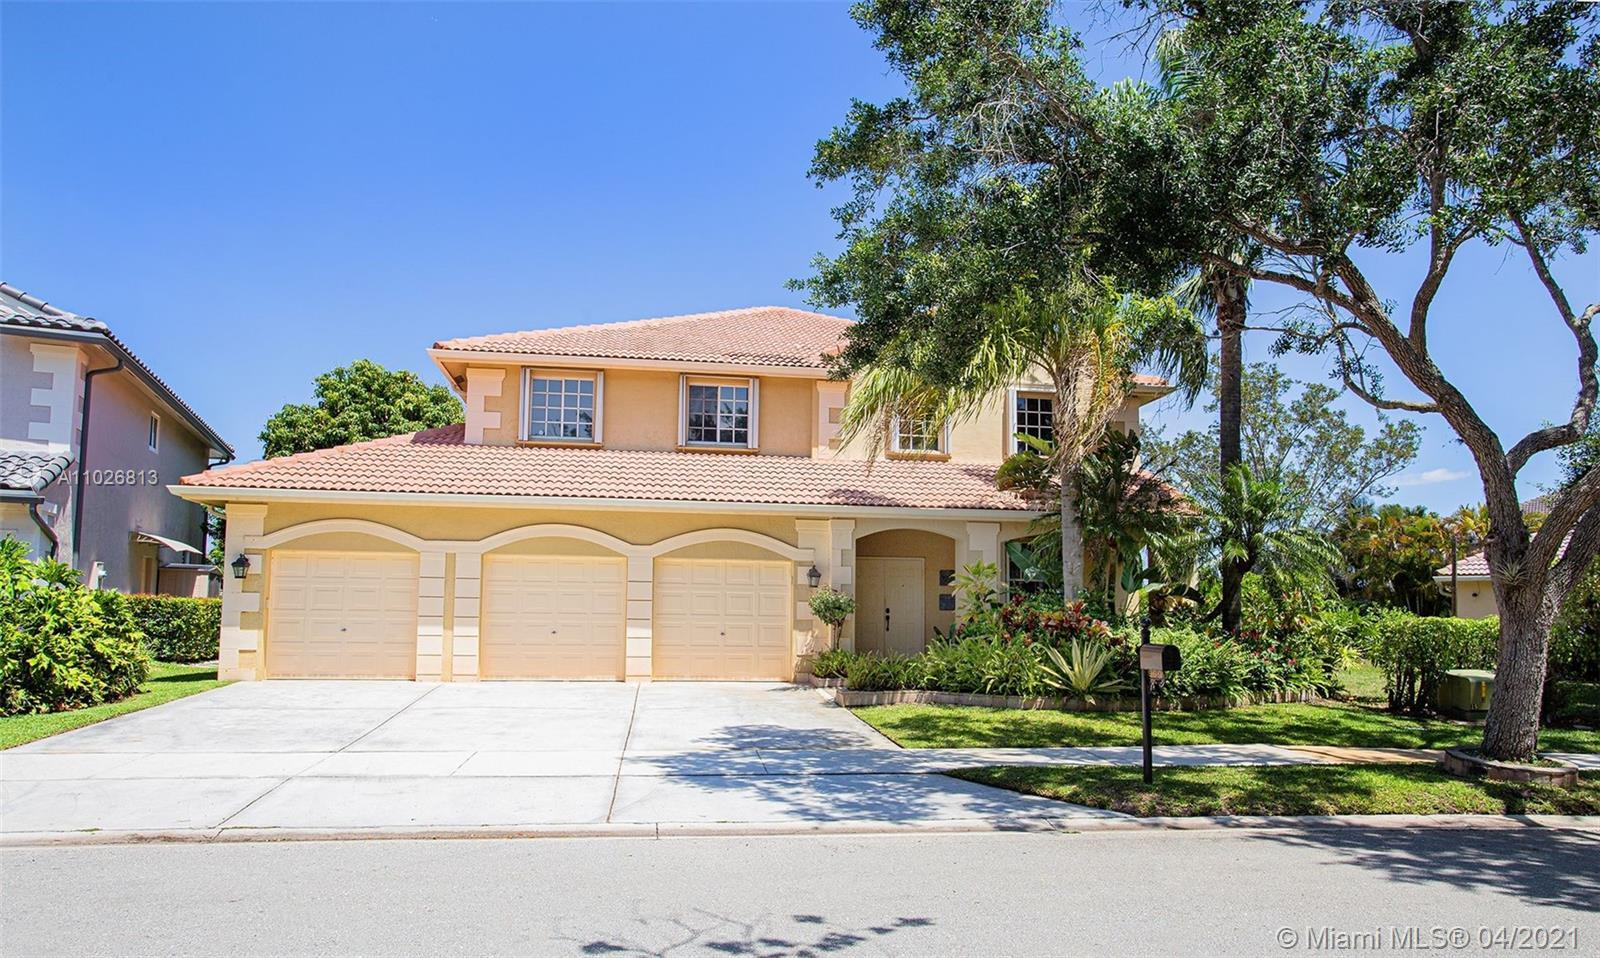 AMAZING HOME IN THE BEAUTIFUL CITY OF WESTON, BREATHTAKING WATER VIEWS EVERYWHERE, LOCATED ON ONE OF